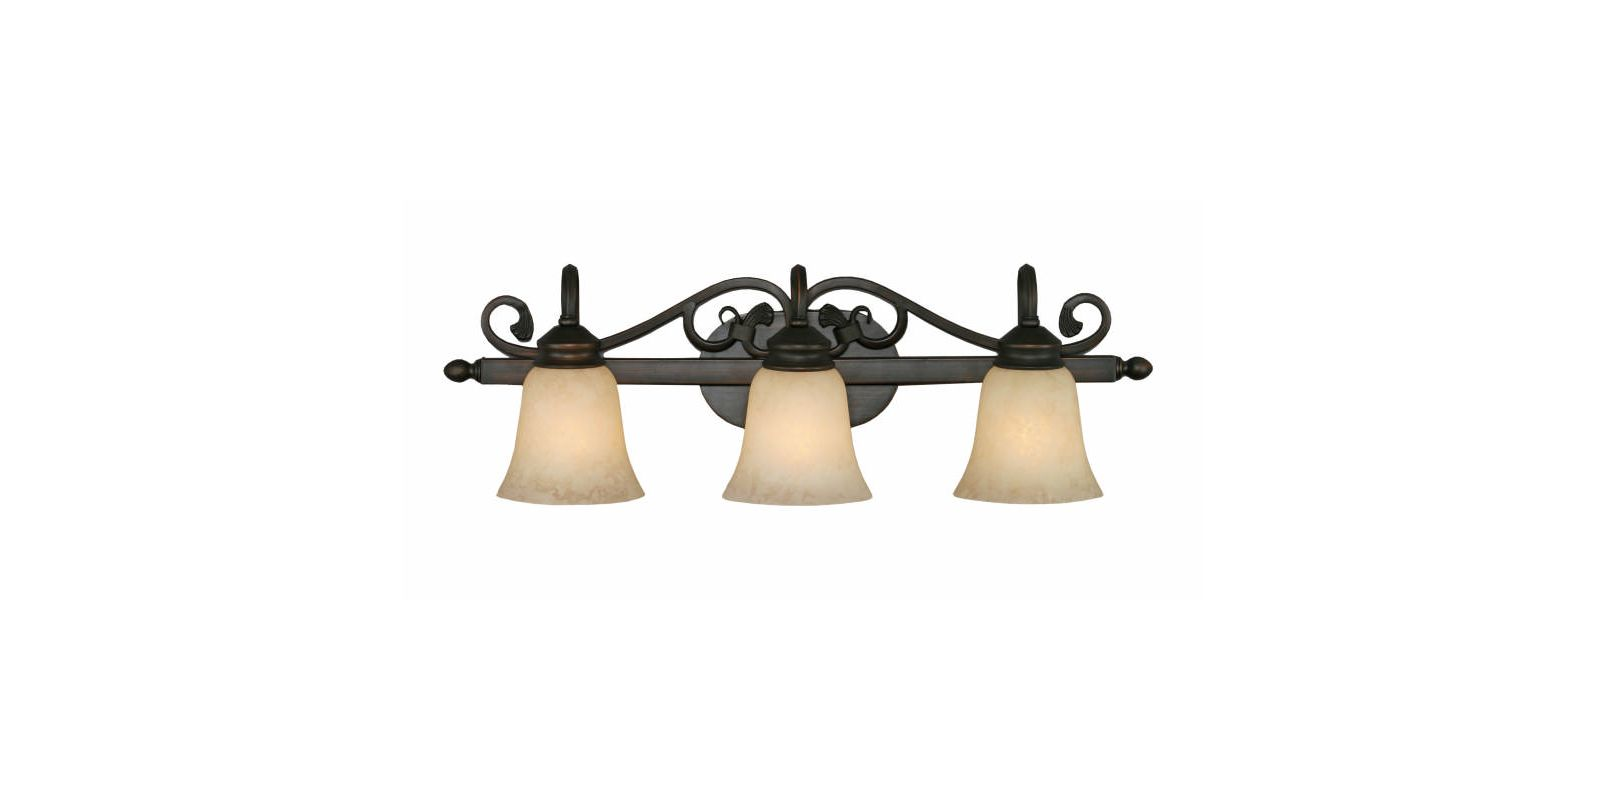 Golden Lighting 4074-3 Belle Meade 3 Light Bathroom Vanity Light